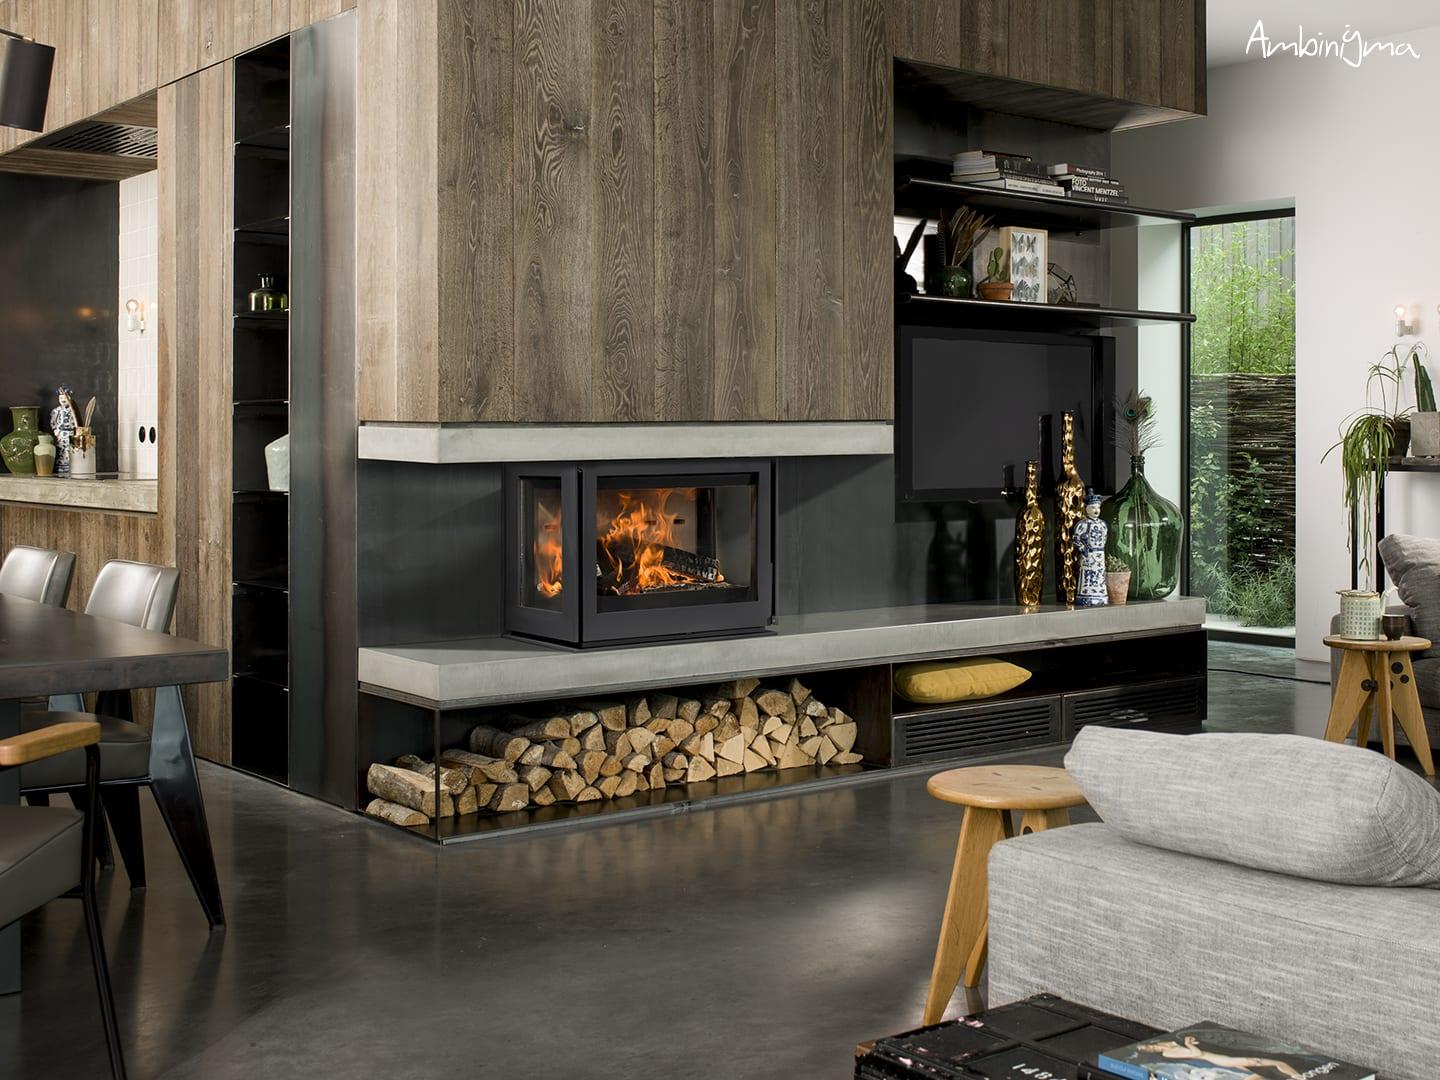 Recuperador Lenha BarbasBellfires Unilux 270 Three sided